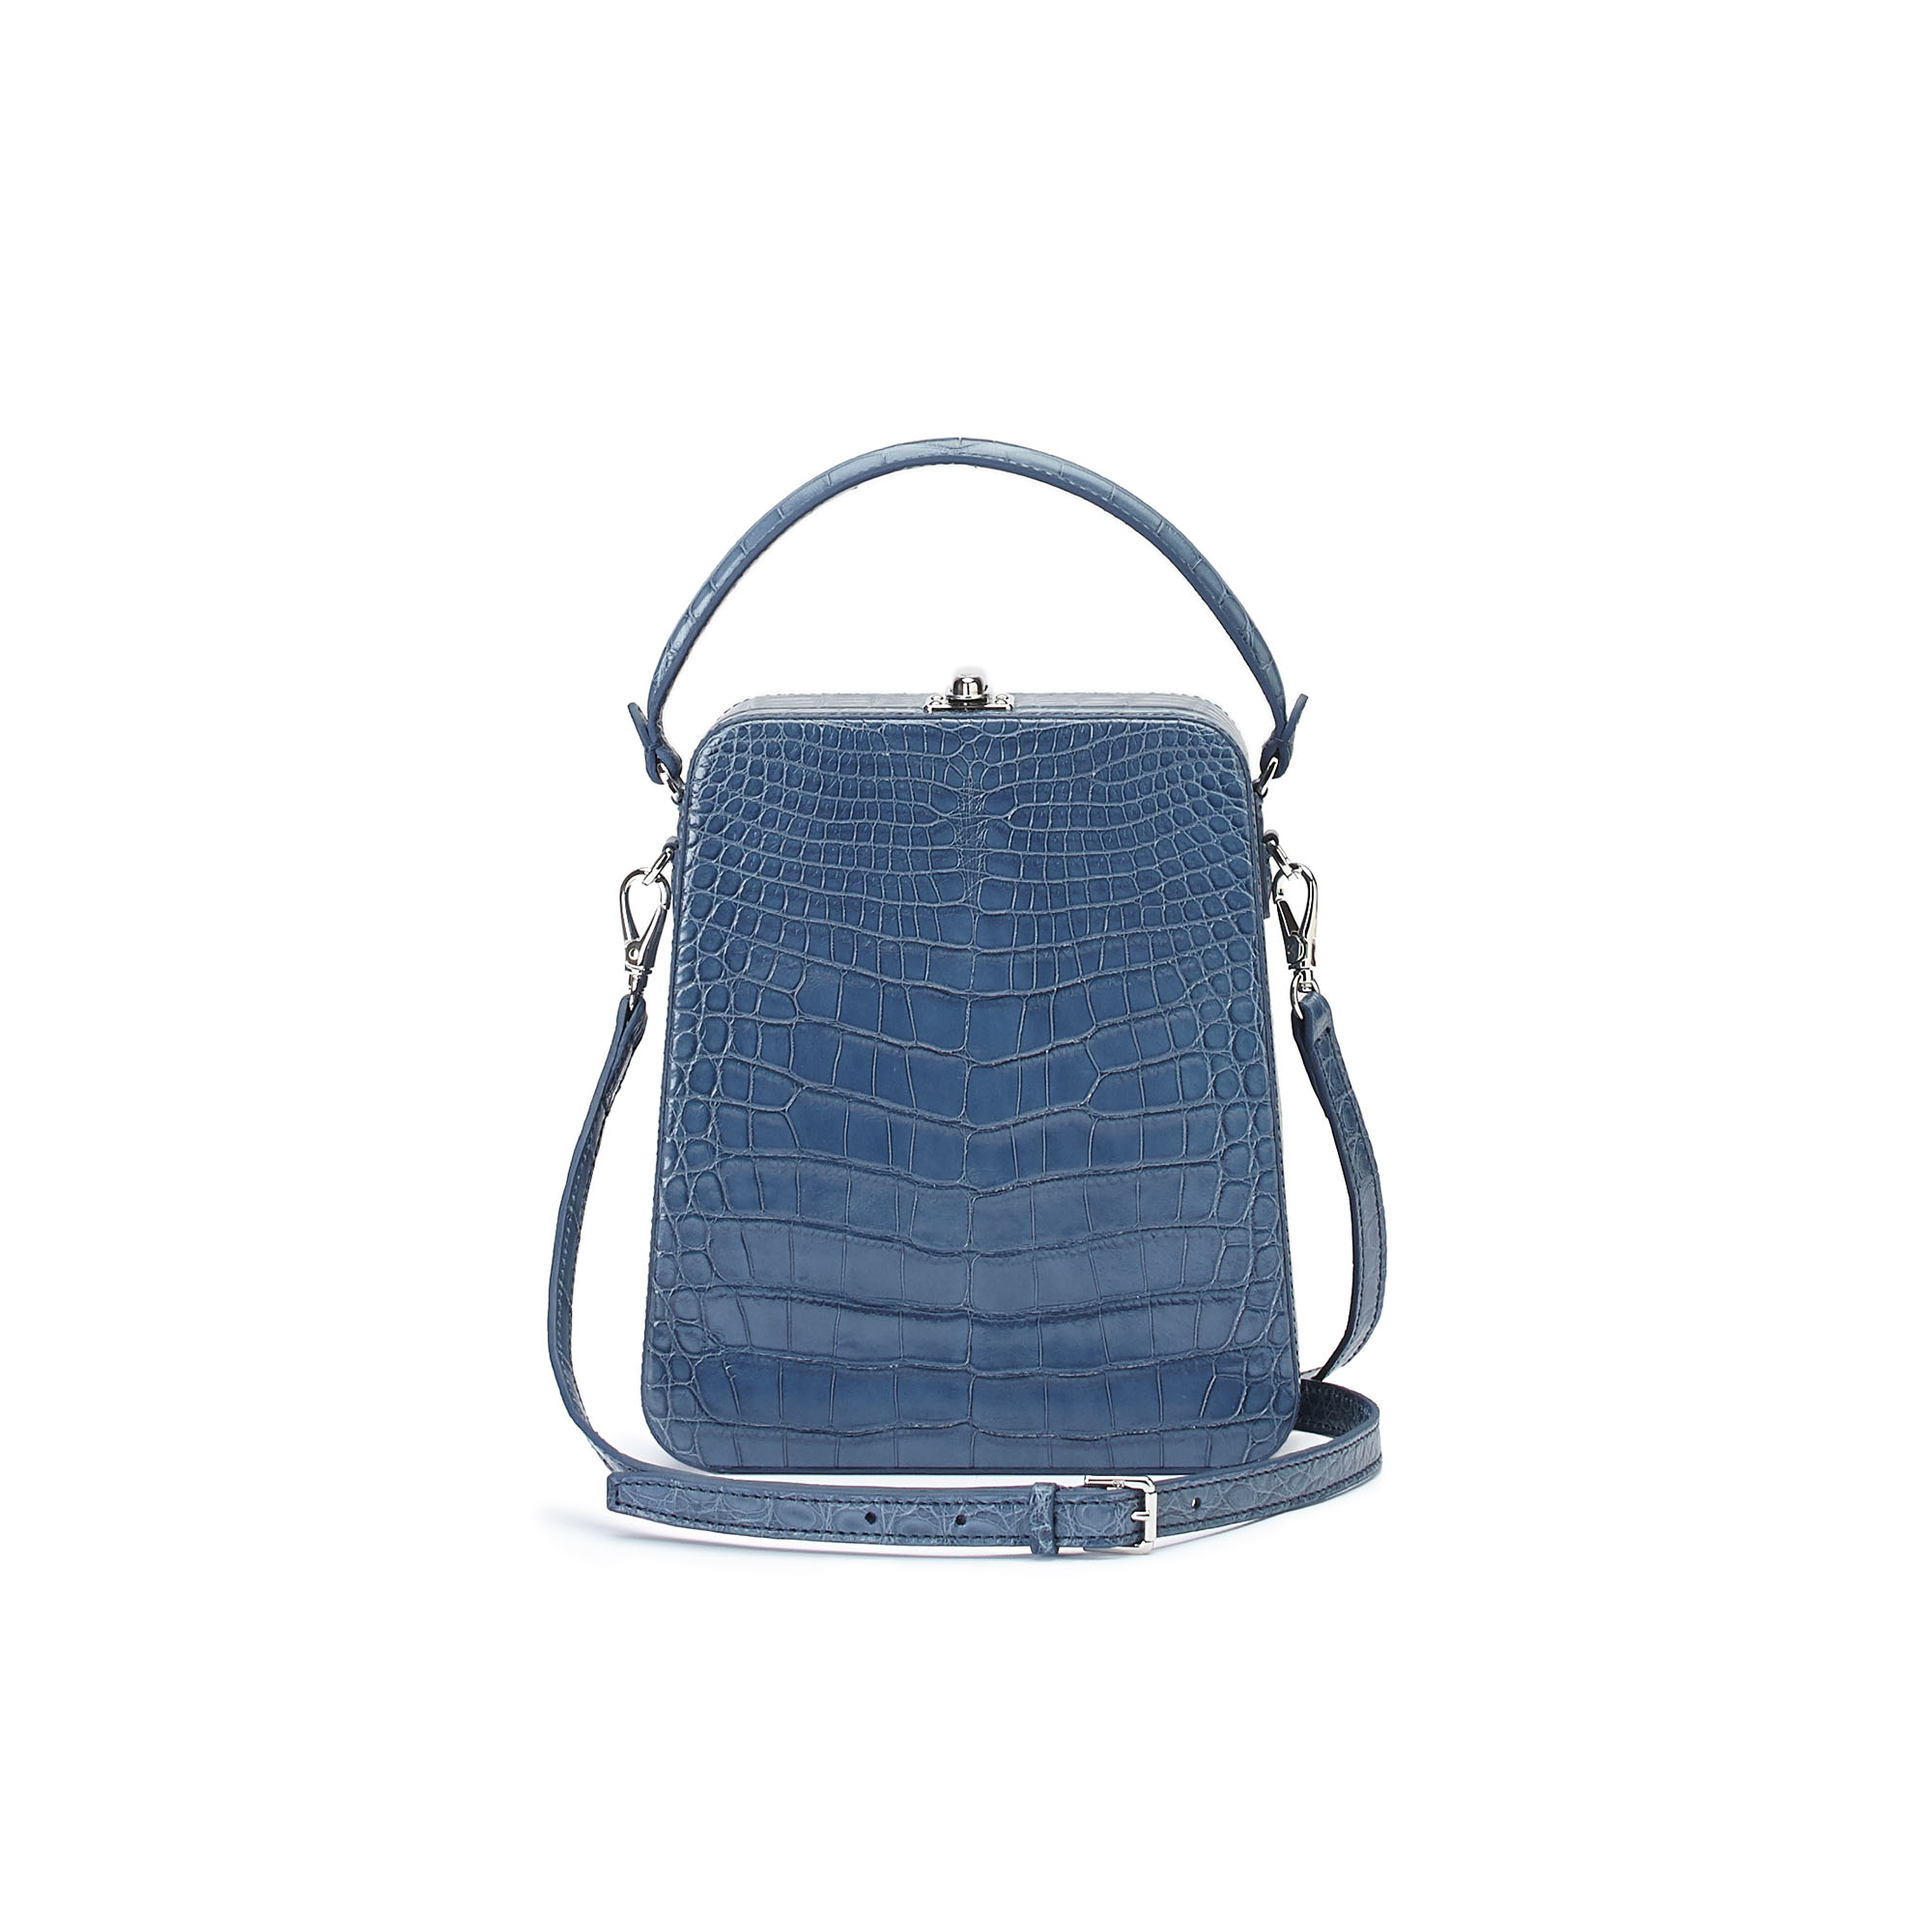 The blue alligator denim Tall Bertoncina bag by Bertoni 1949 03